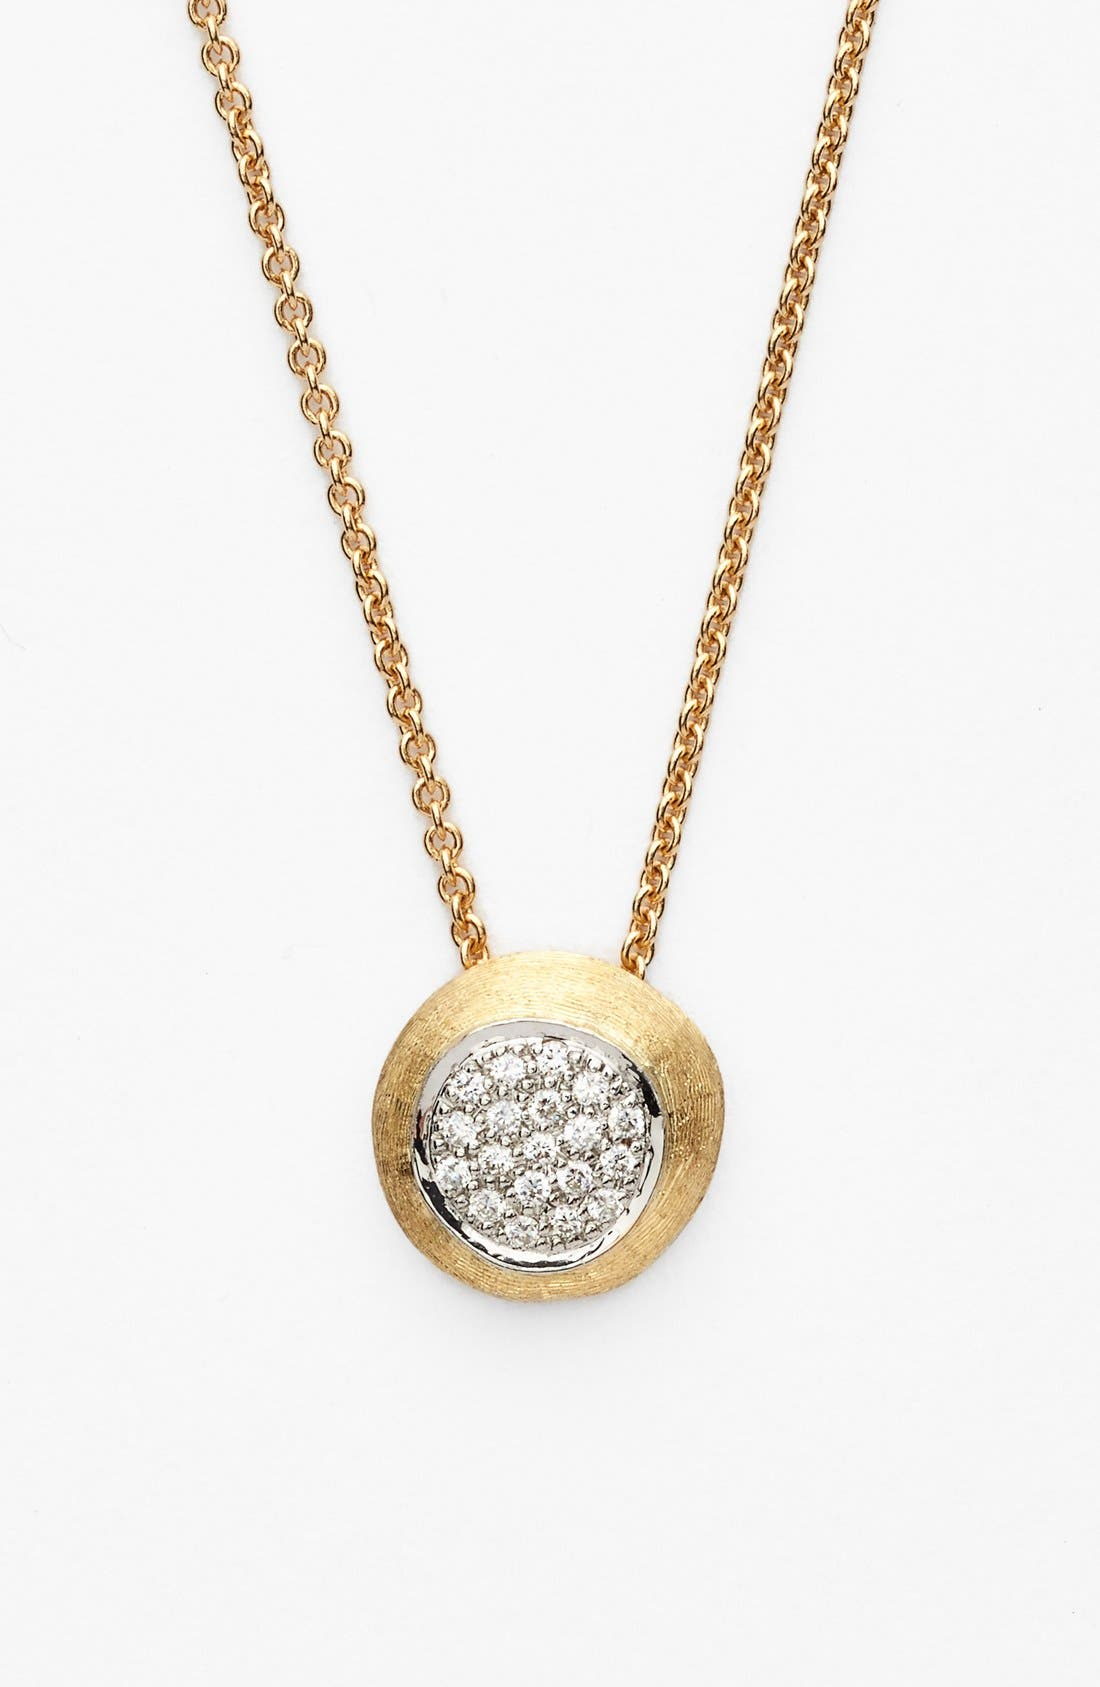 Alternate Image 1 Selected - Marco Bicego 'Delicati - Jaipur' Diamond Pendant Necklace